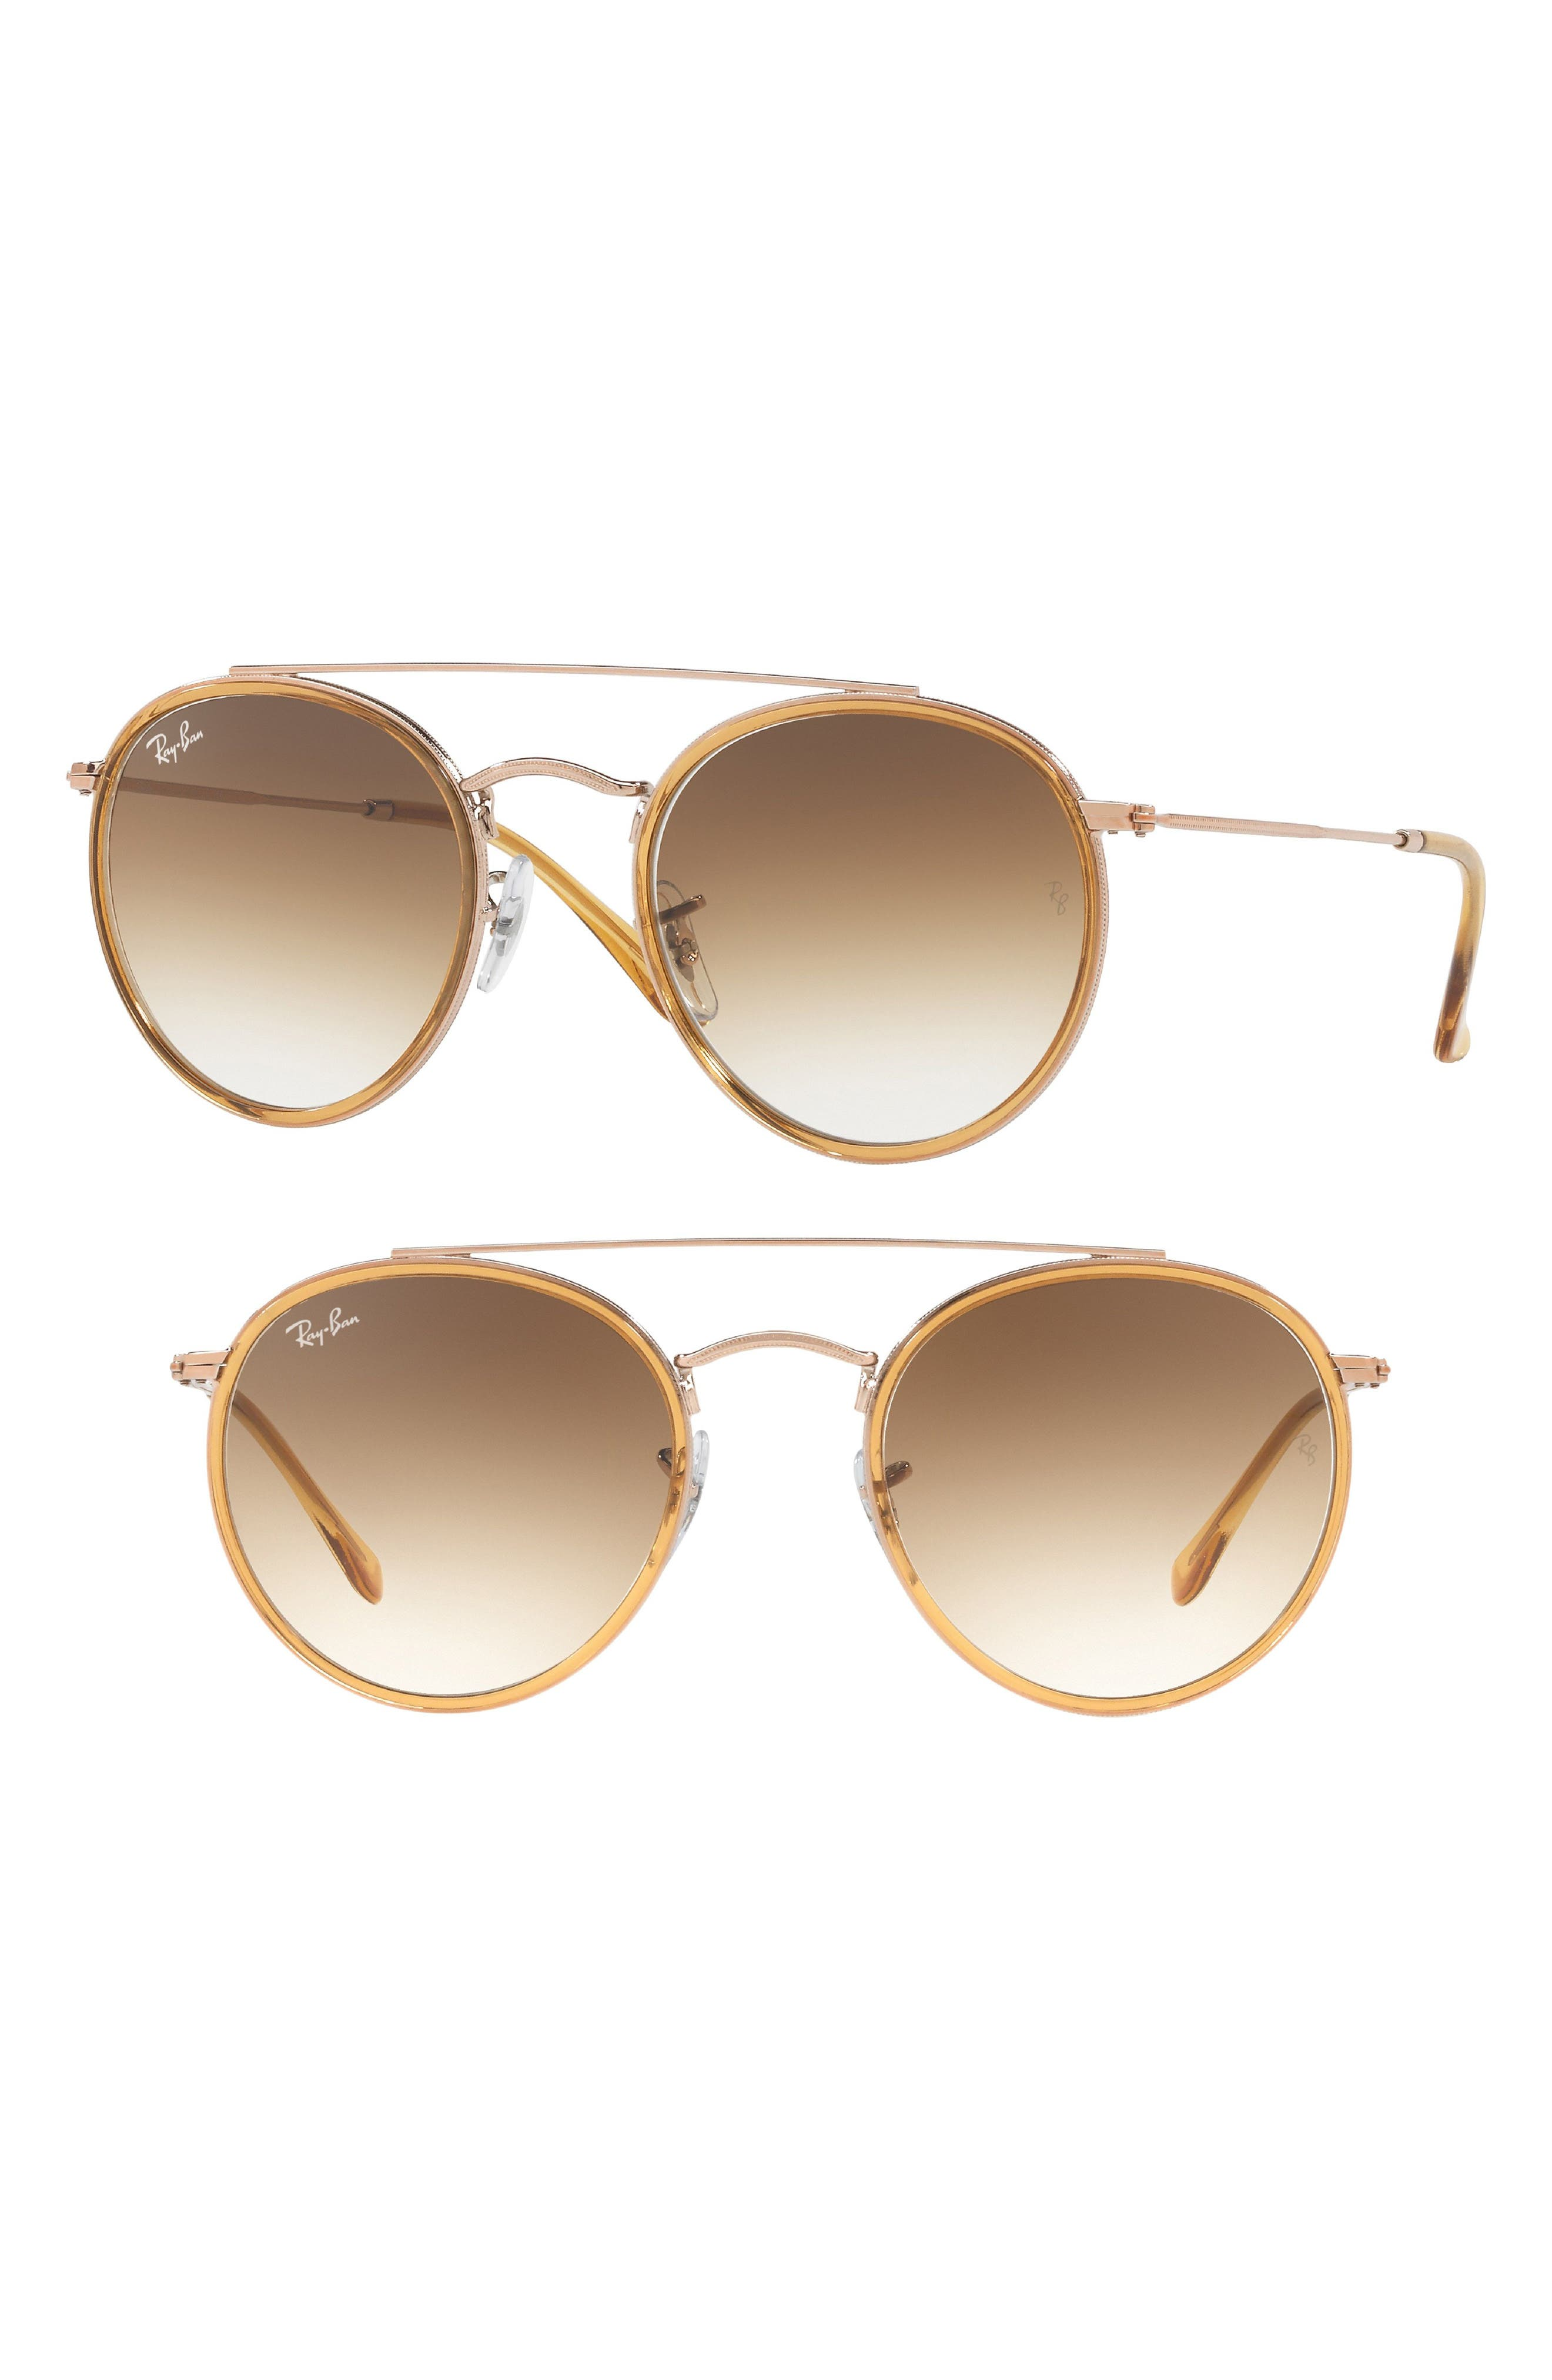 51mm Aviator Gradient Lens Sunglasses,                         Main,                         color, 219